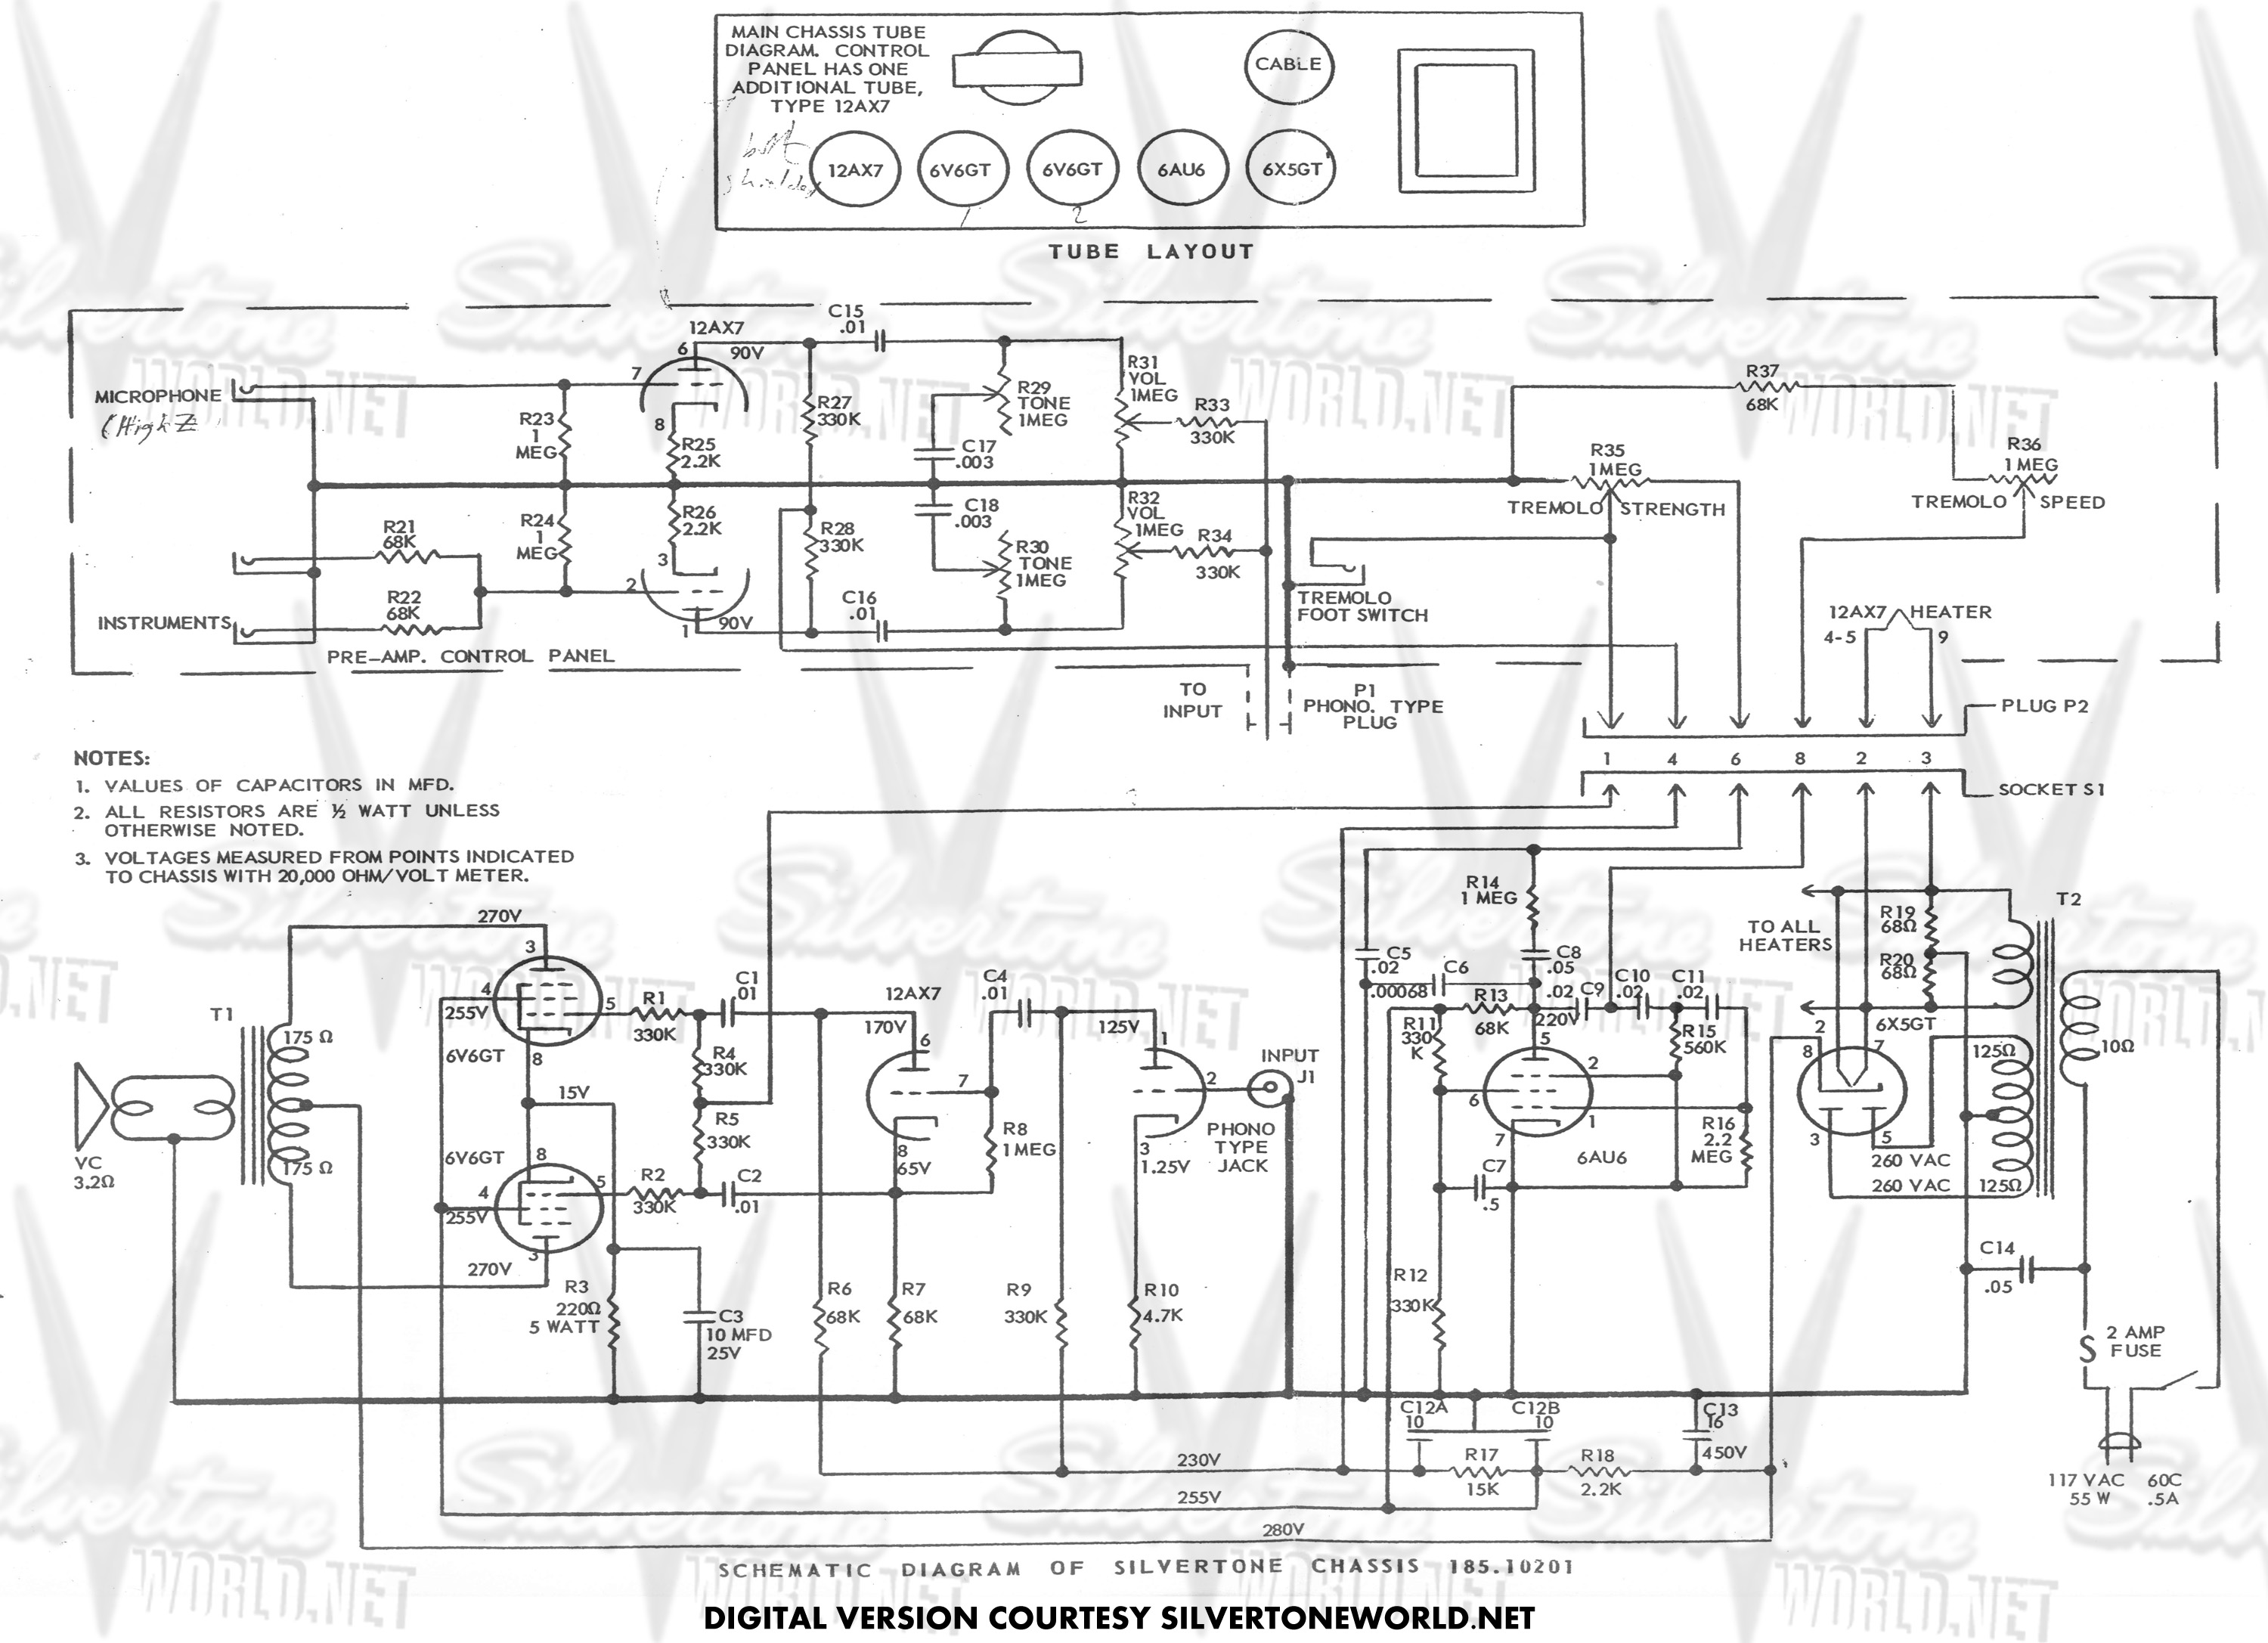 silver tone guitar wiring diagrams silvertone world - division 57 - schematics, manuals and ...